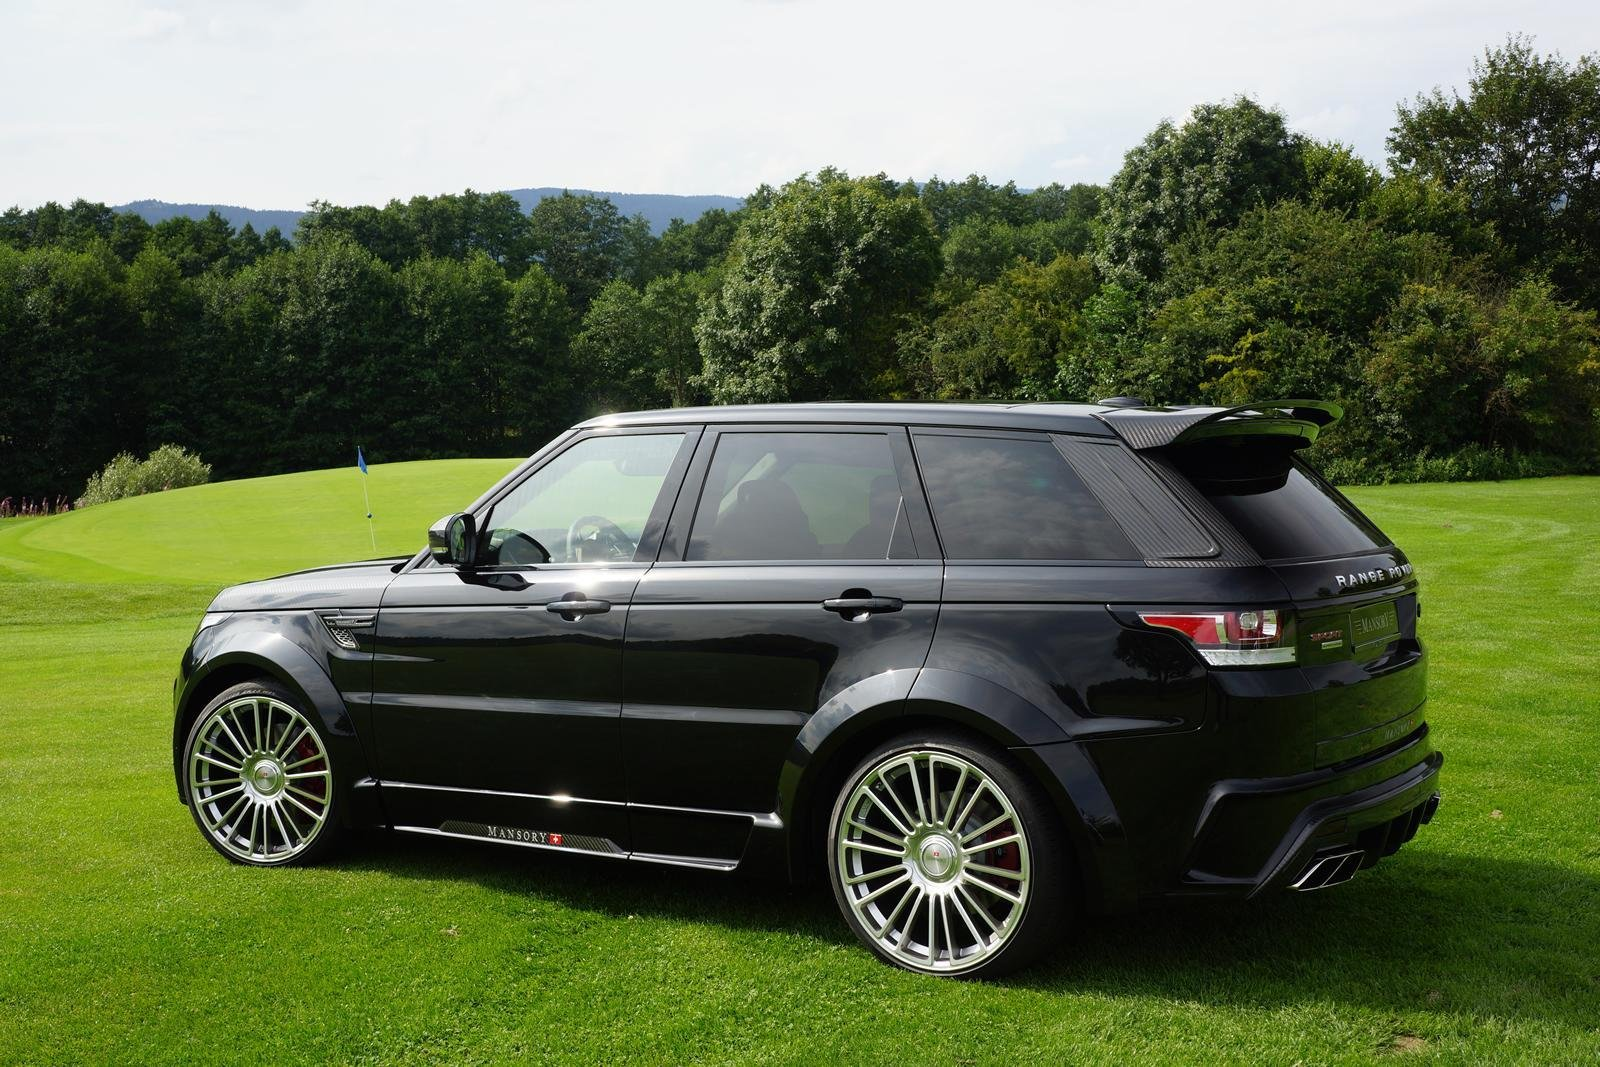 2014 land rover range rover sport by mansory picture. Black Bedroom Furniture Sets. Home Design Ideas